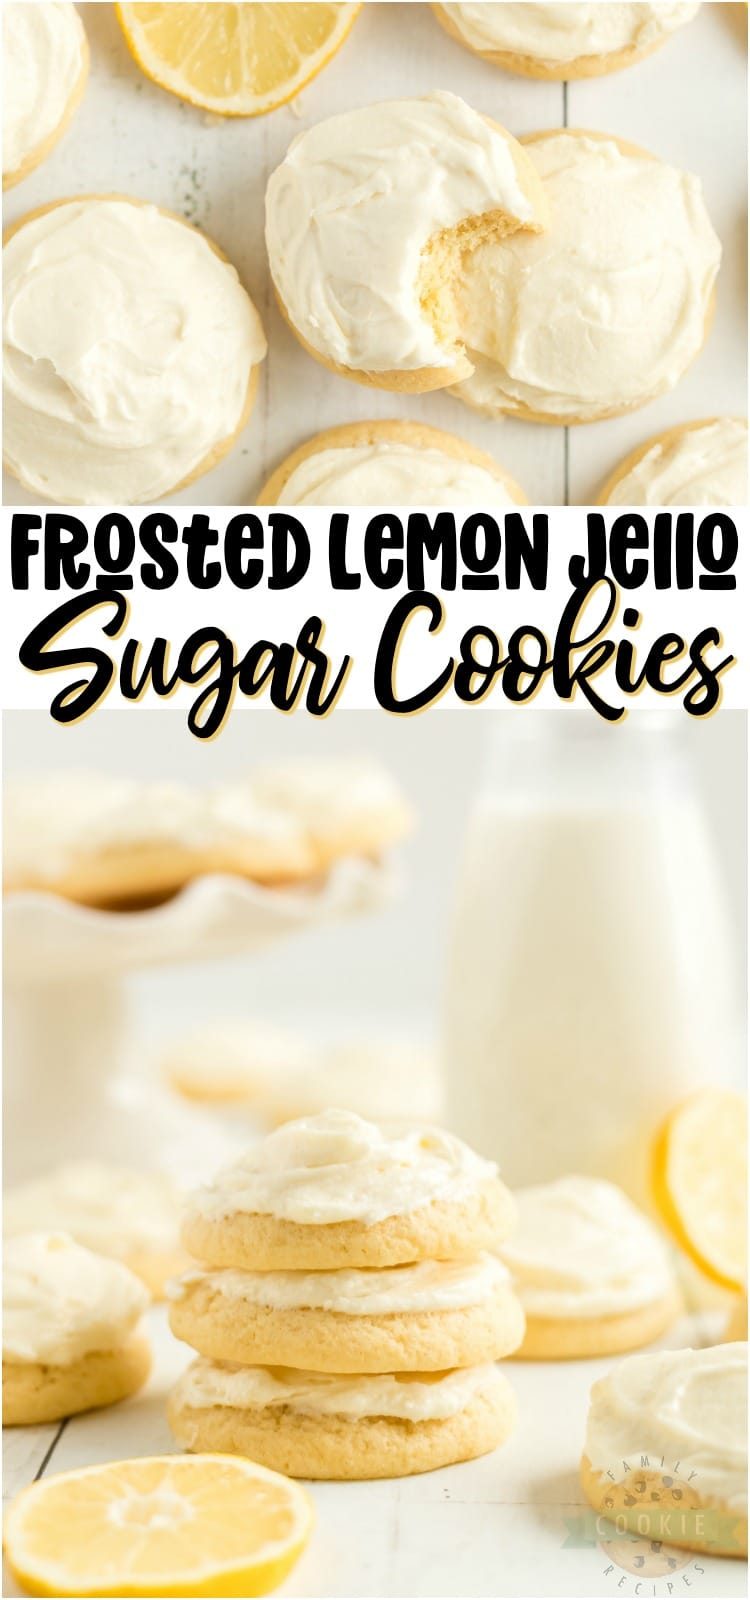 Lemon Jello Sugar Cookies are delicious cookies made with lemon jello! Easy sugar cookie recipe with a simple buttercream frosting perfect for lemon lovers. #lemon #cookies #jello #frosting #baking #dessert #recipe from FAMILY COOKIE RECIPES via @familycookierecipes